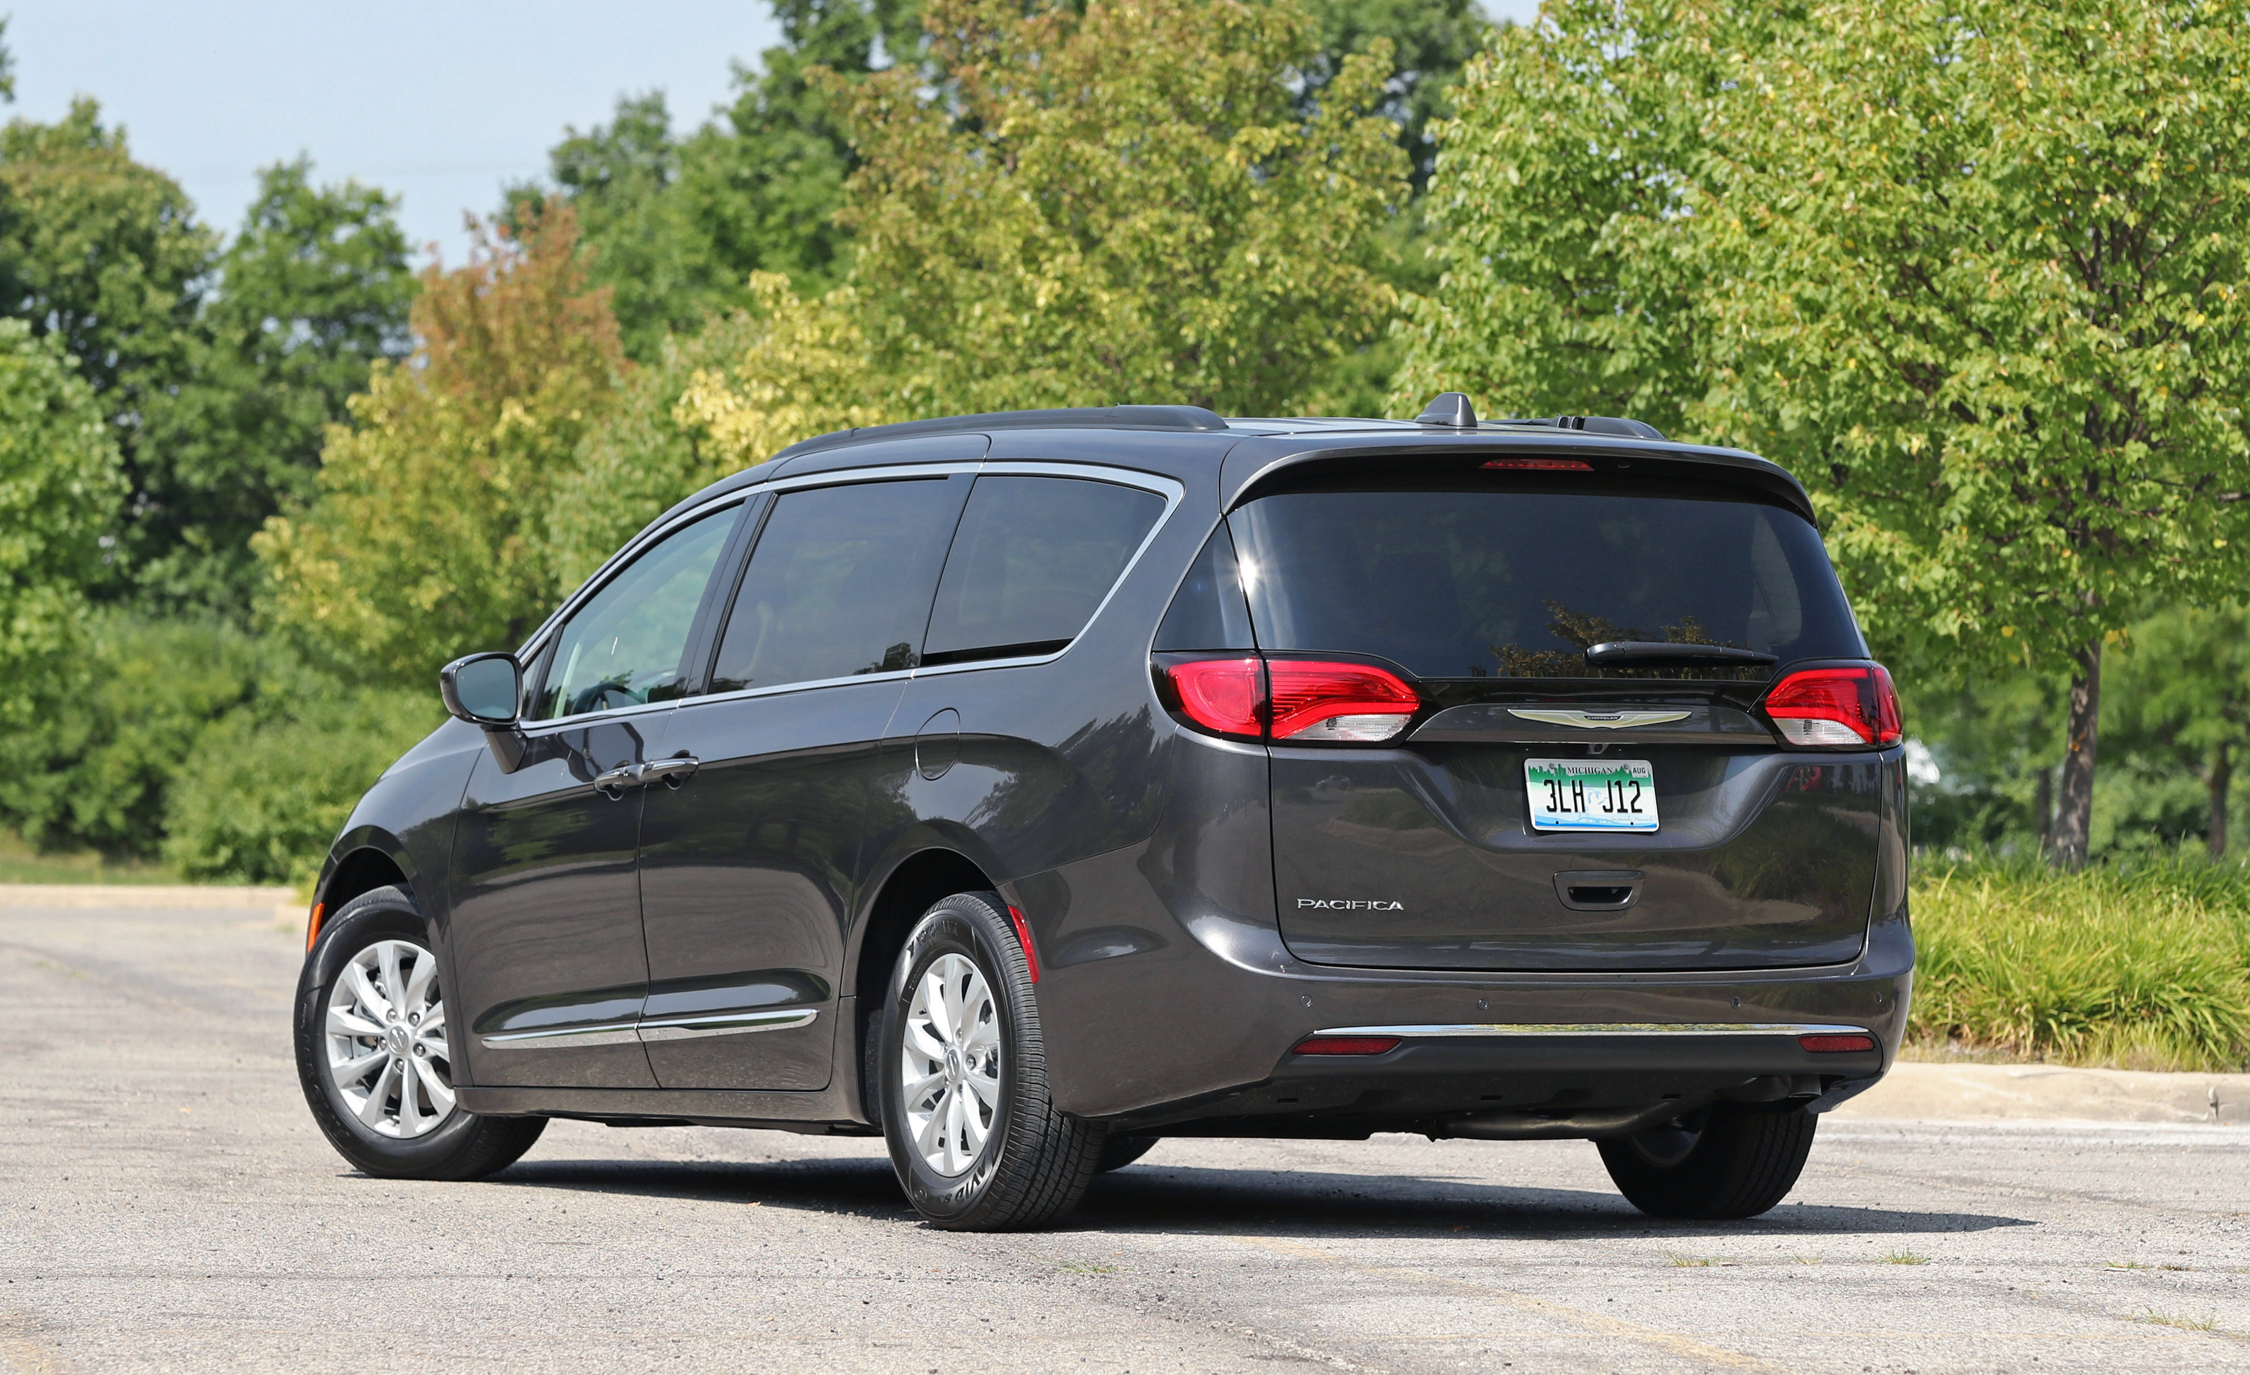 2017 Chrysler Pacifica Exterior Rear (View 24 of 25)